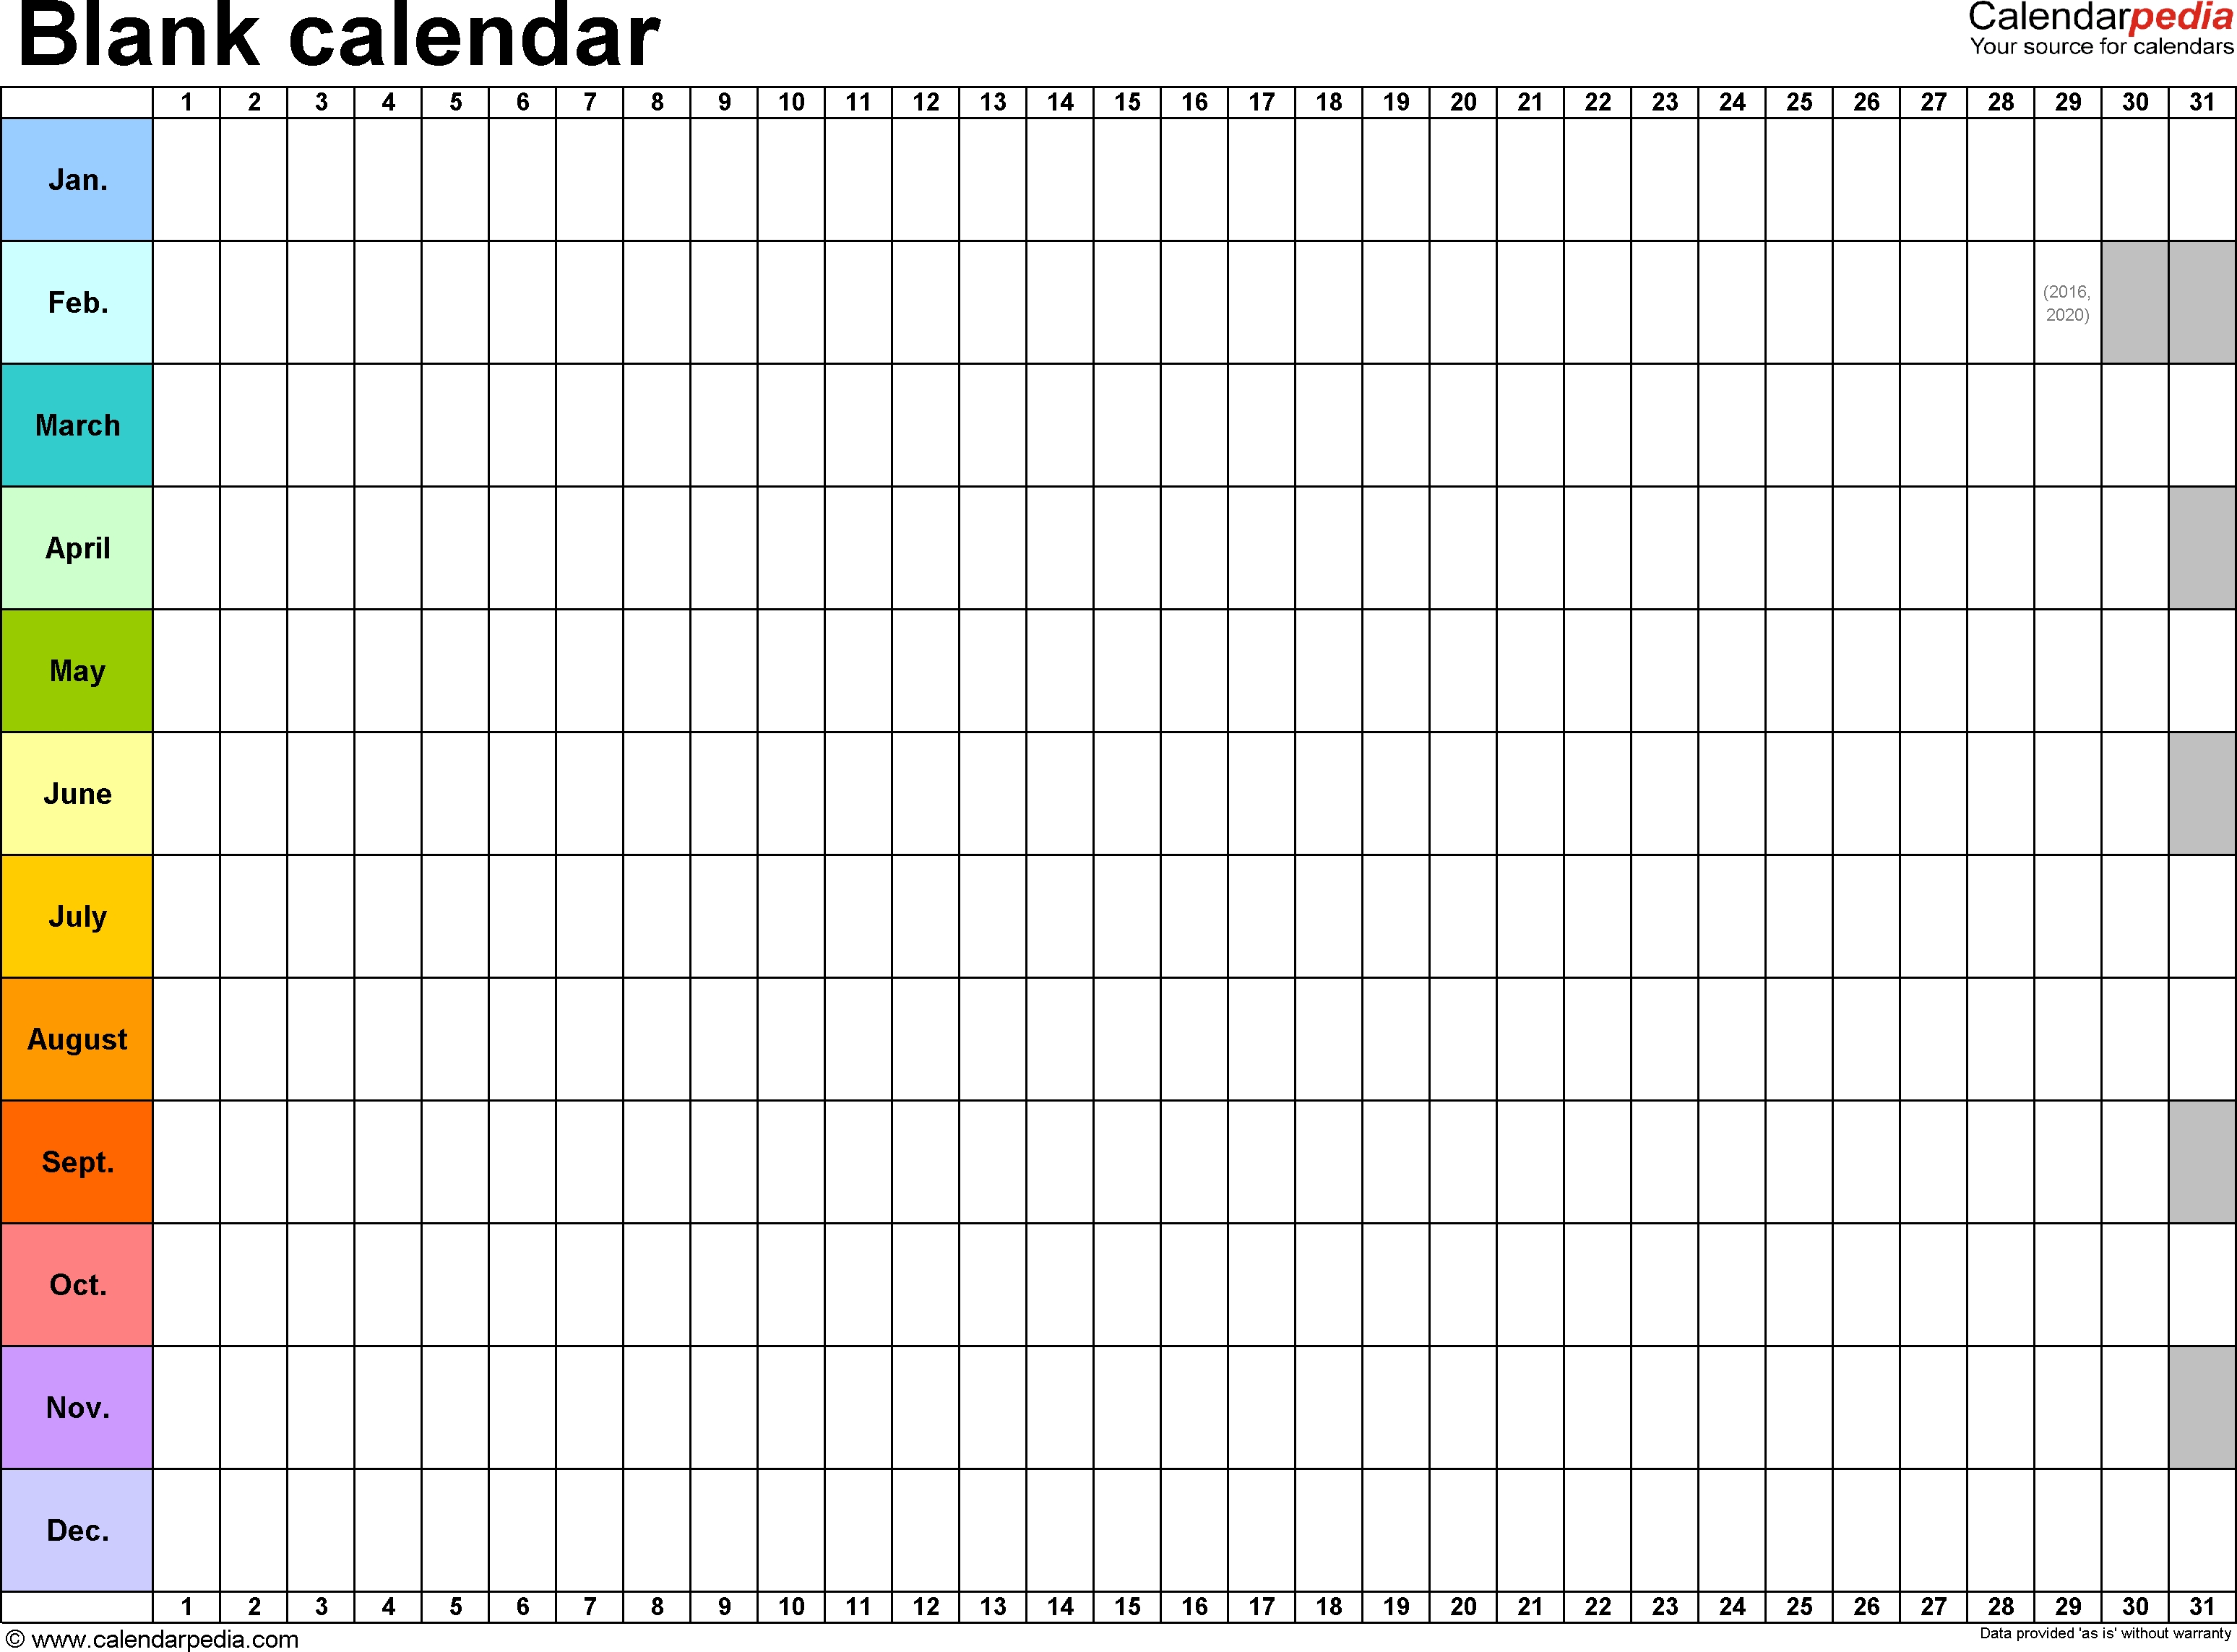 Blank Calendar - 9 Free Printable Microsoft Word Templates within Blank One Month Calendar Template